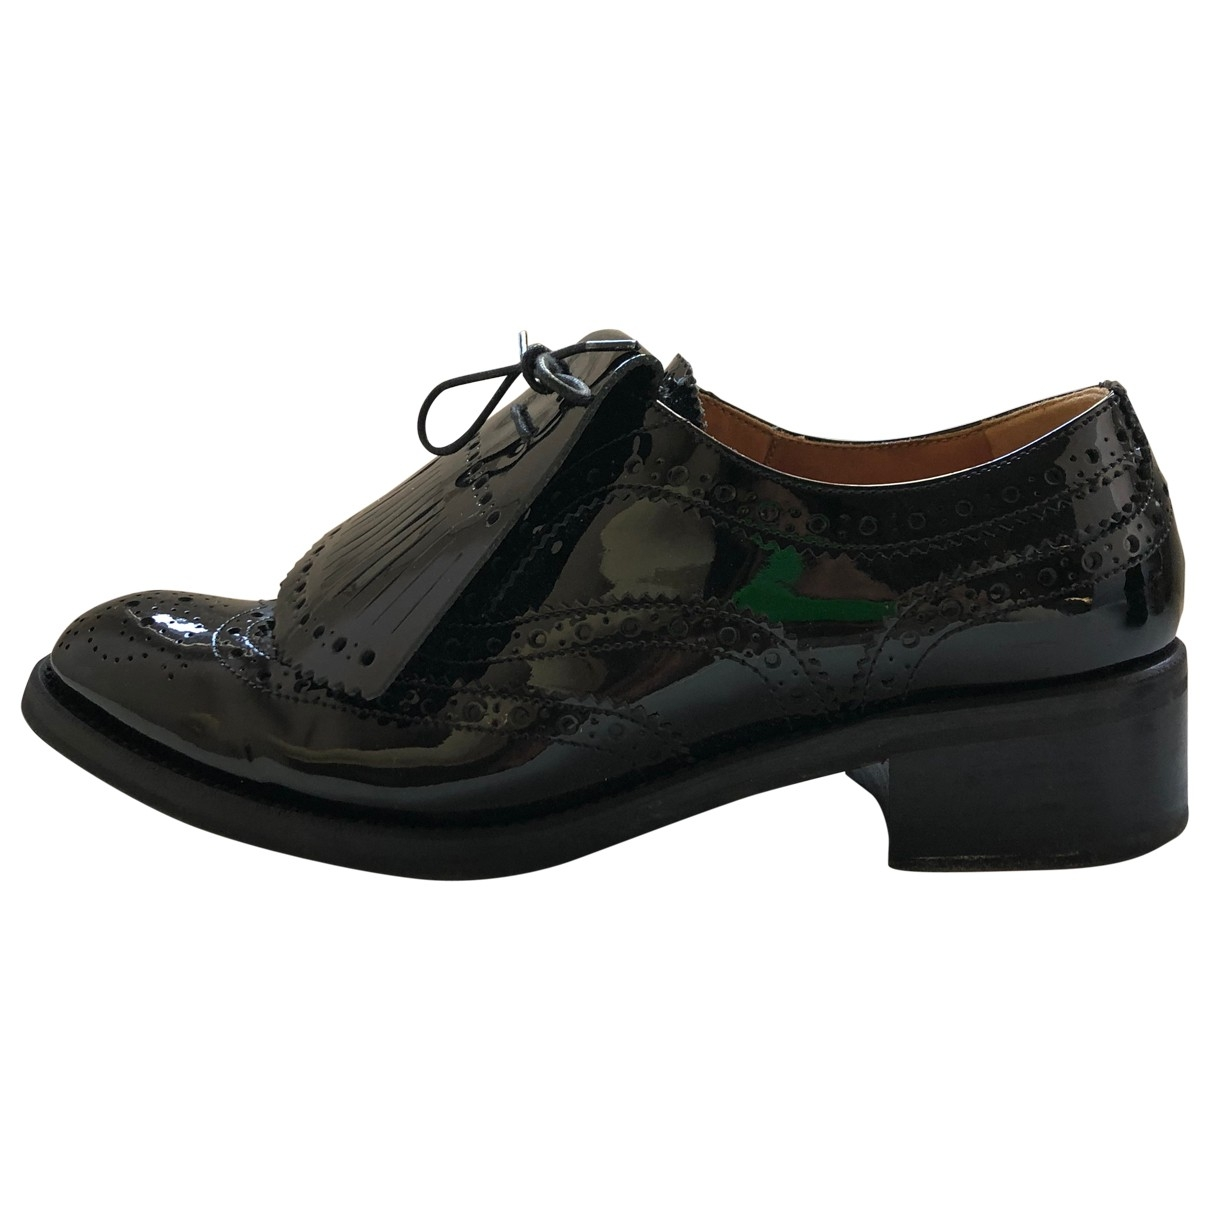 Church's \N Black Patent leather Flats for Women 37 EU